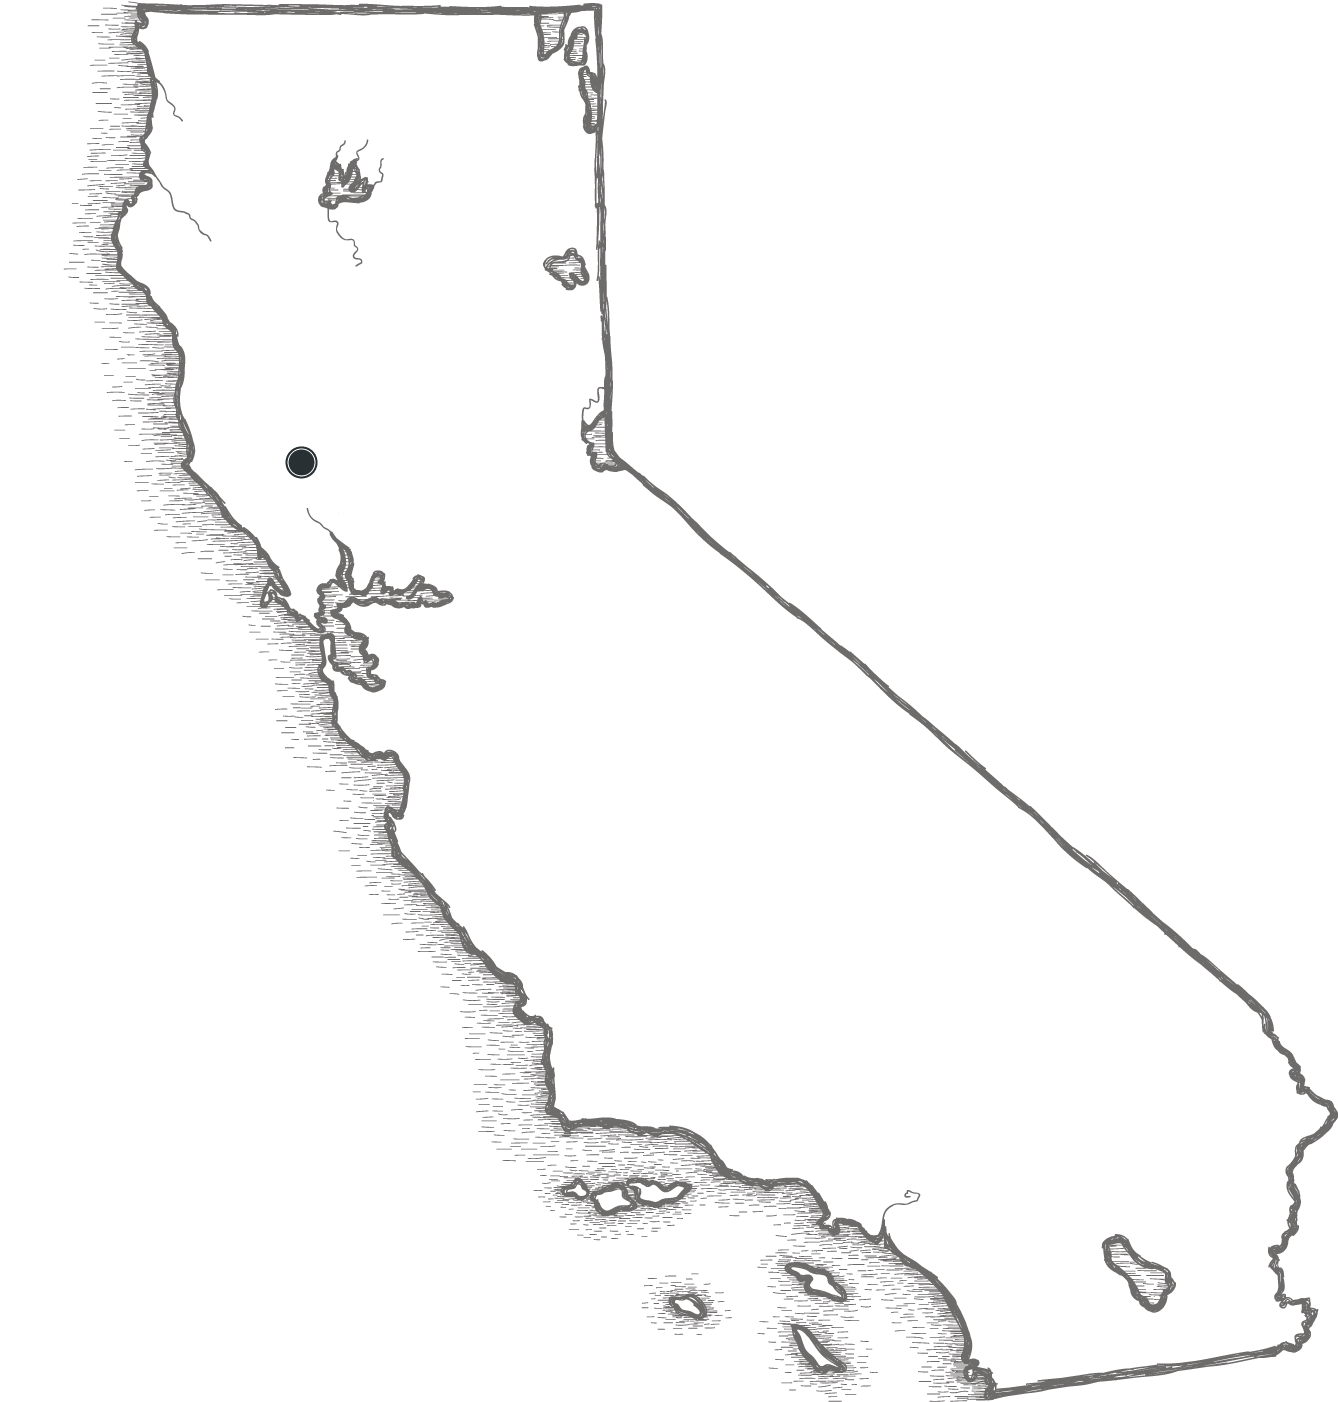 Artistic sketch of the state of California - Calistoga highlighted